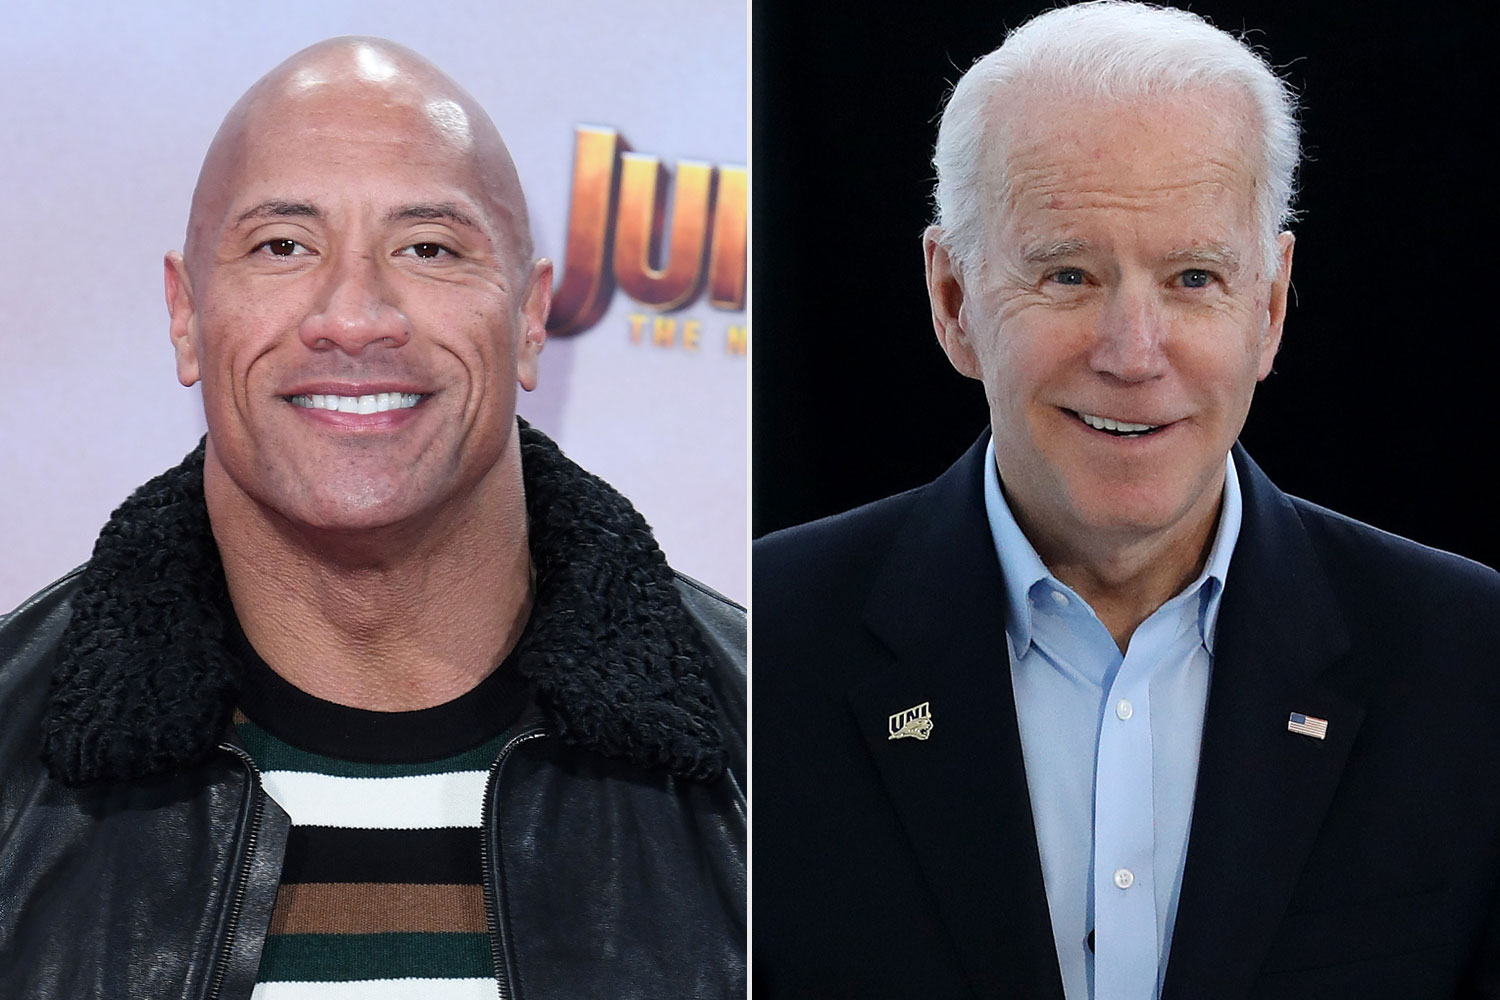 Dwayne Johnson, Joe Biden